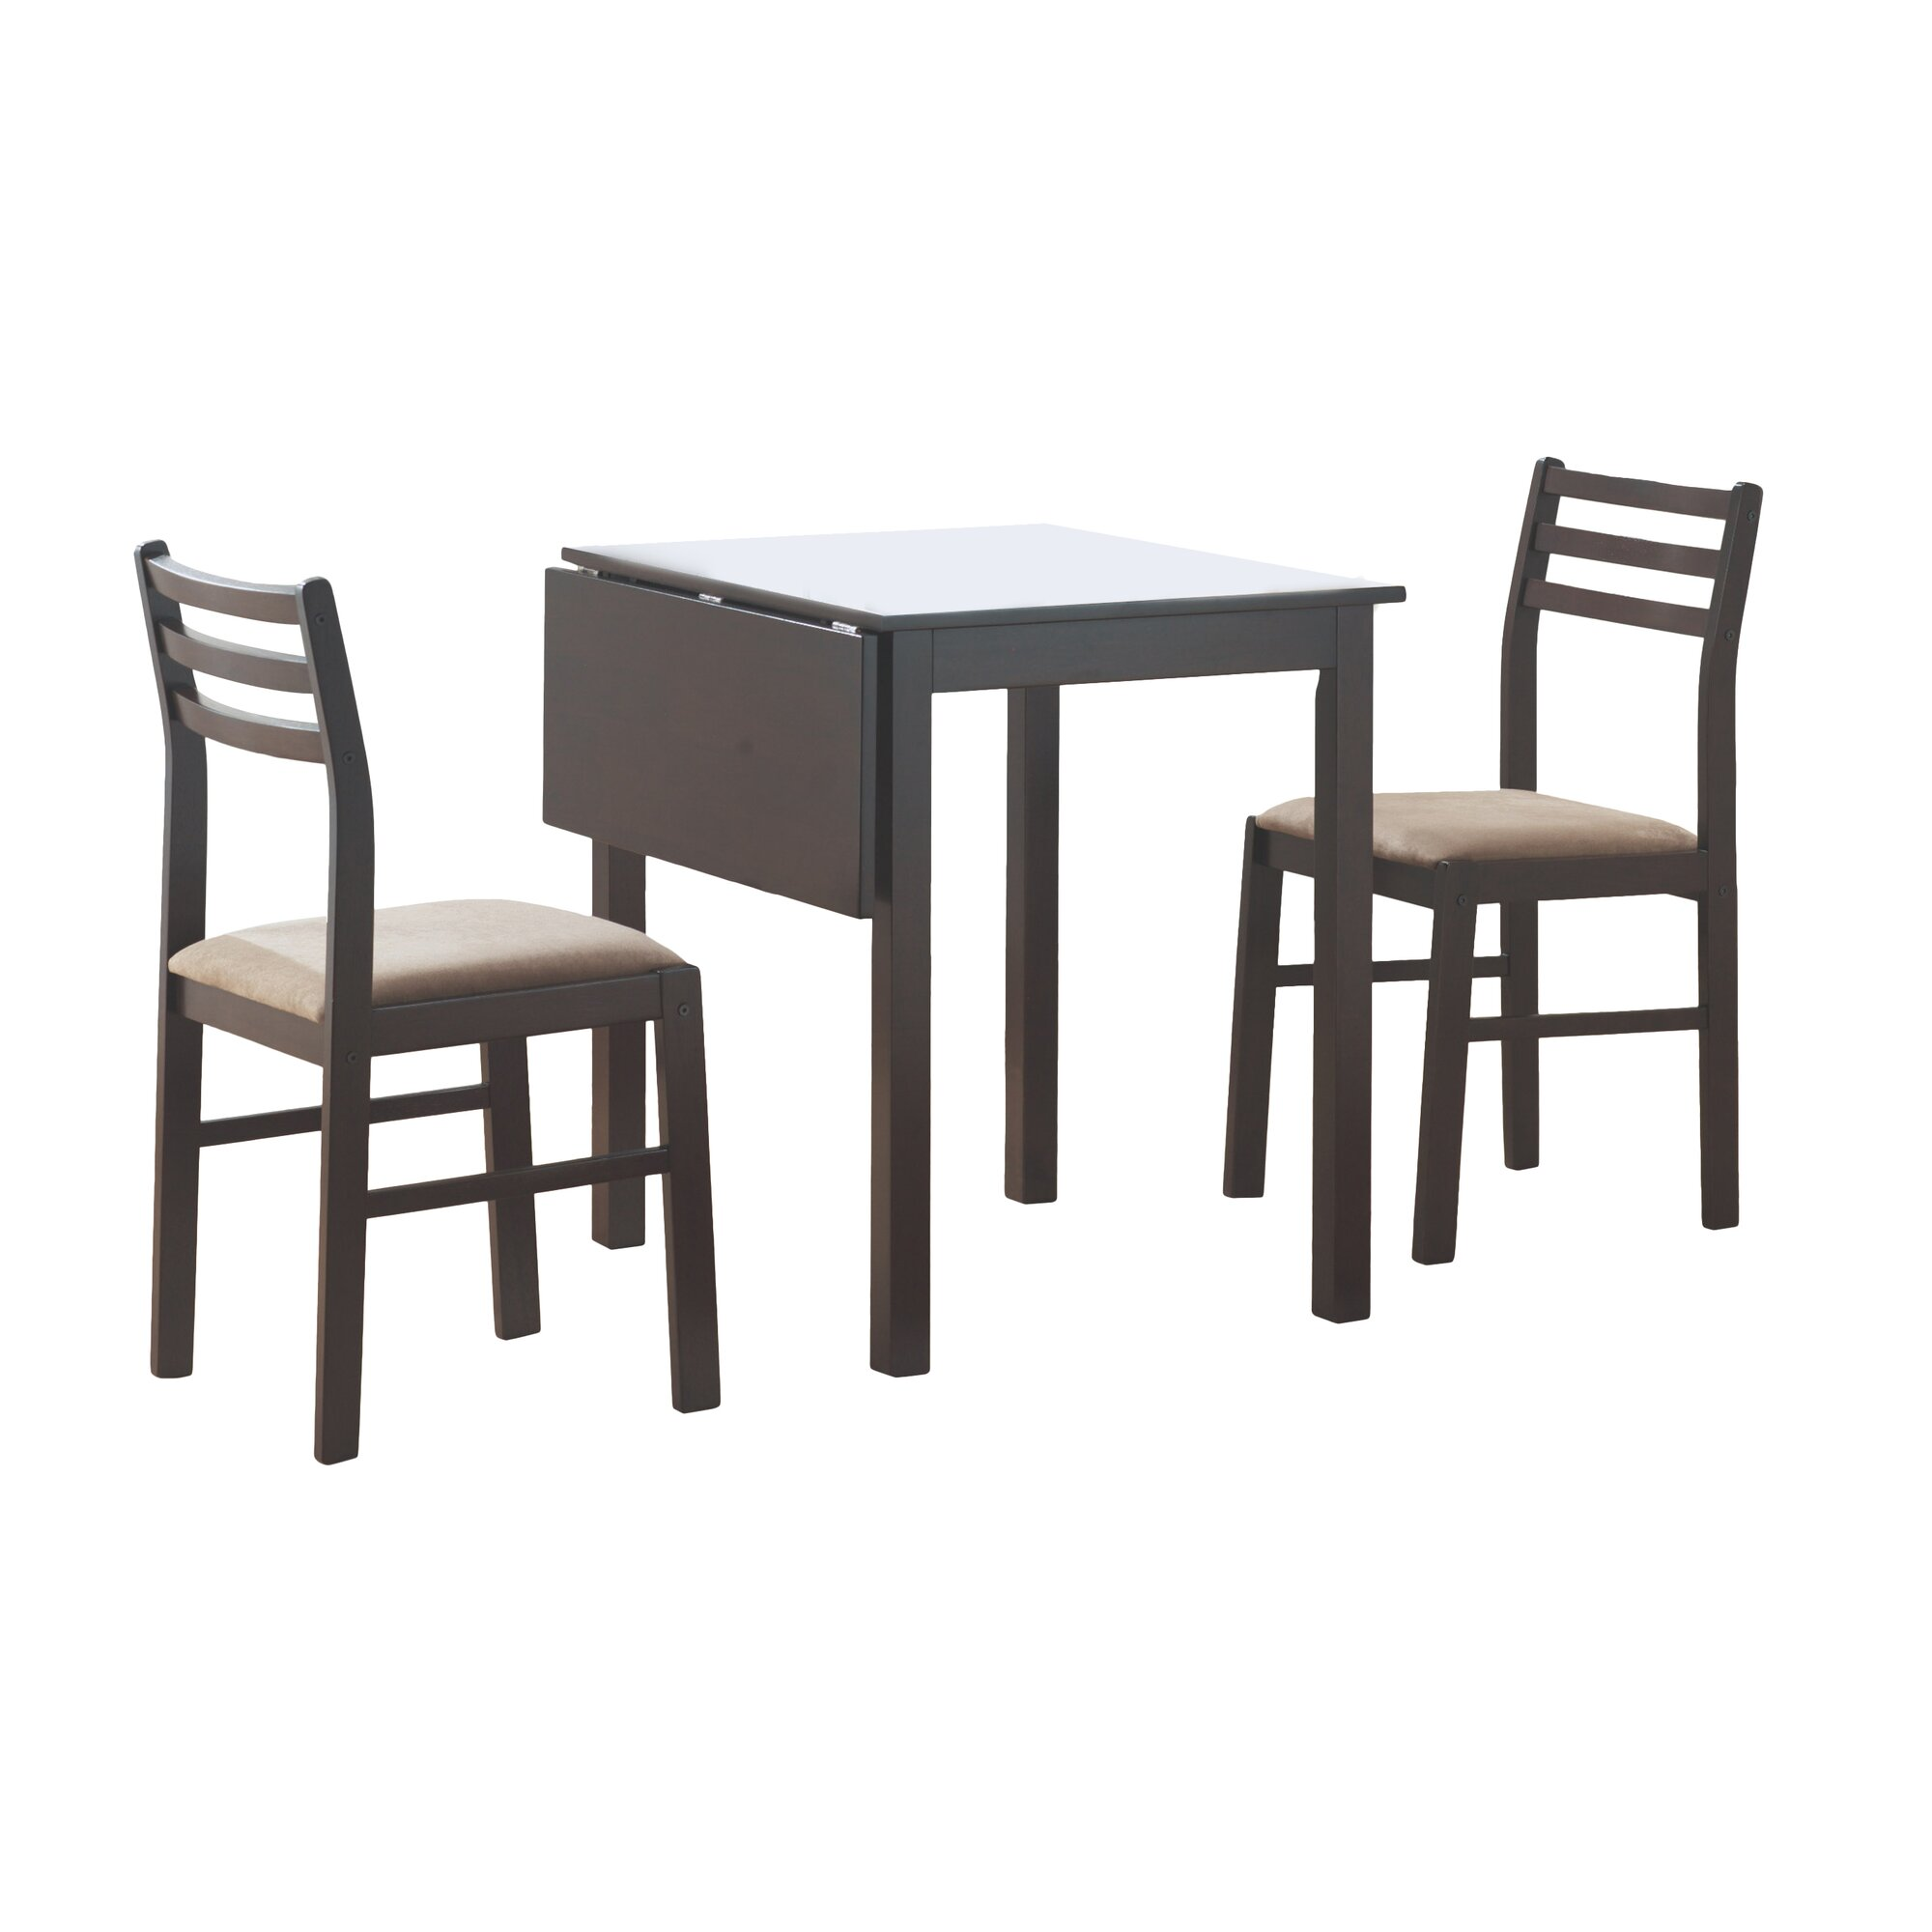 Monarch specialties inc 3 piece dining set reviews for 3 piece dining room